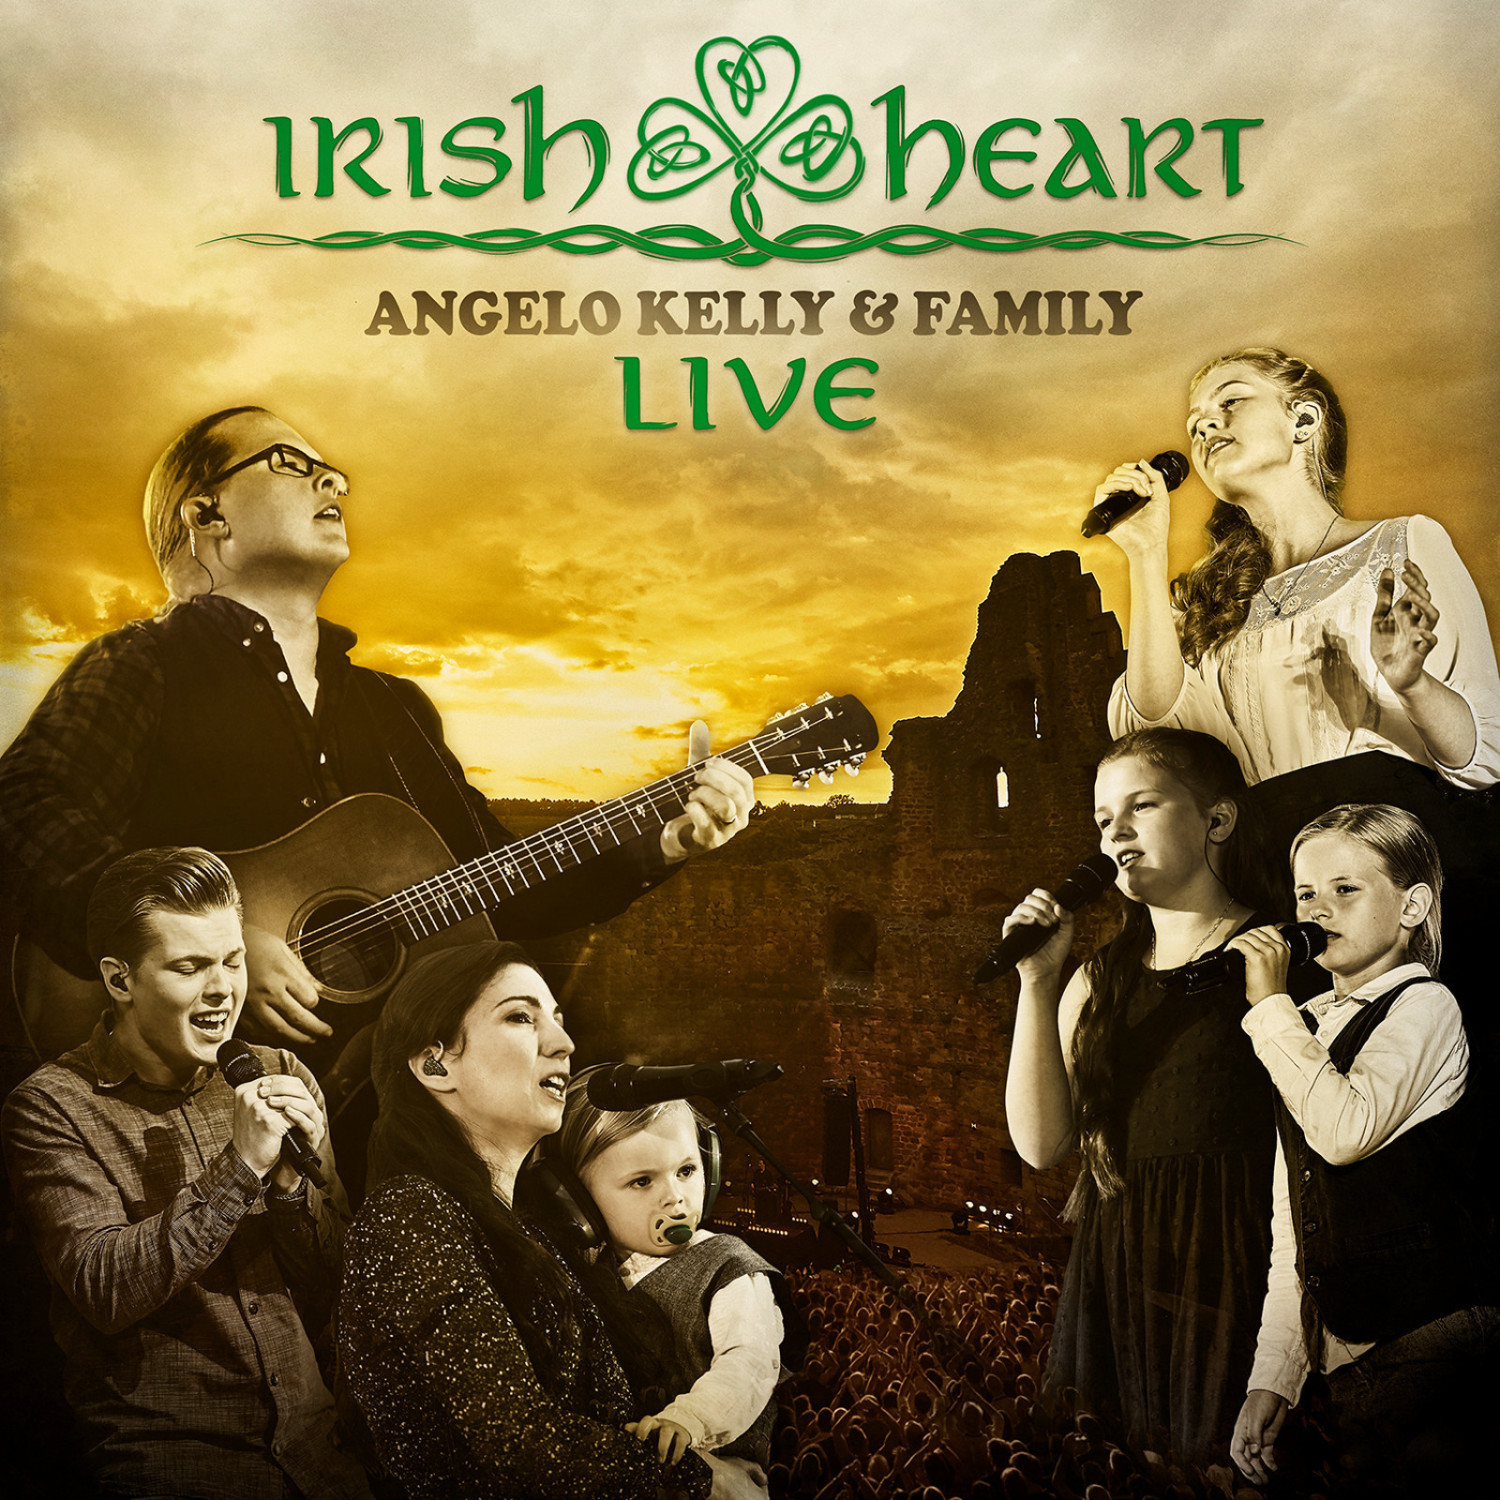 Angelo Kelly & Family - Irish Heart Live (CD + DVD)